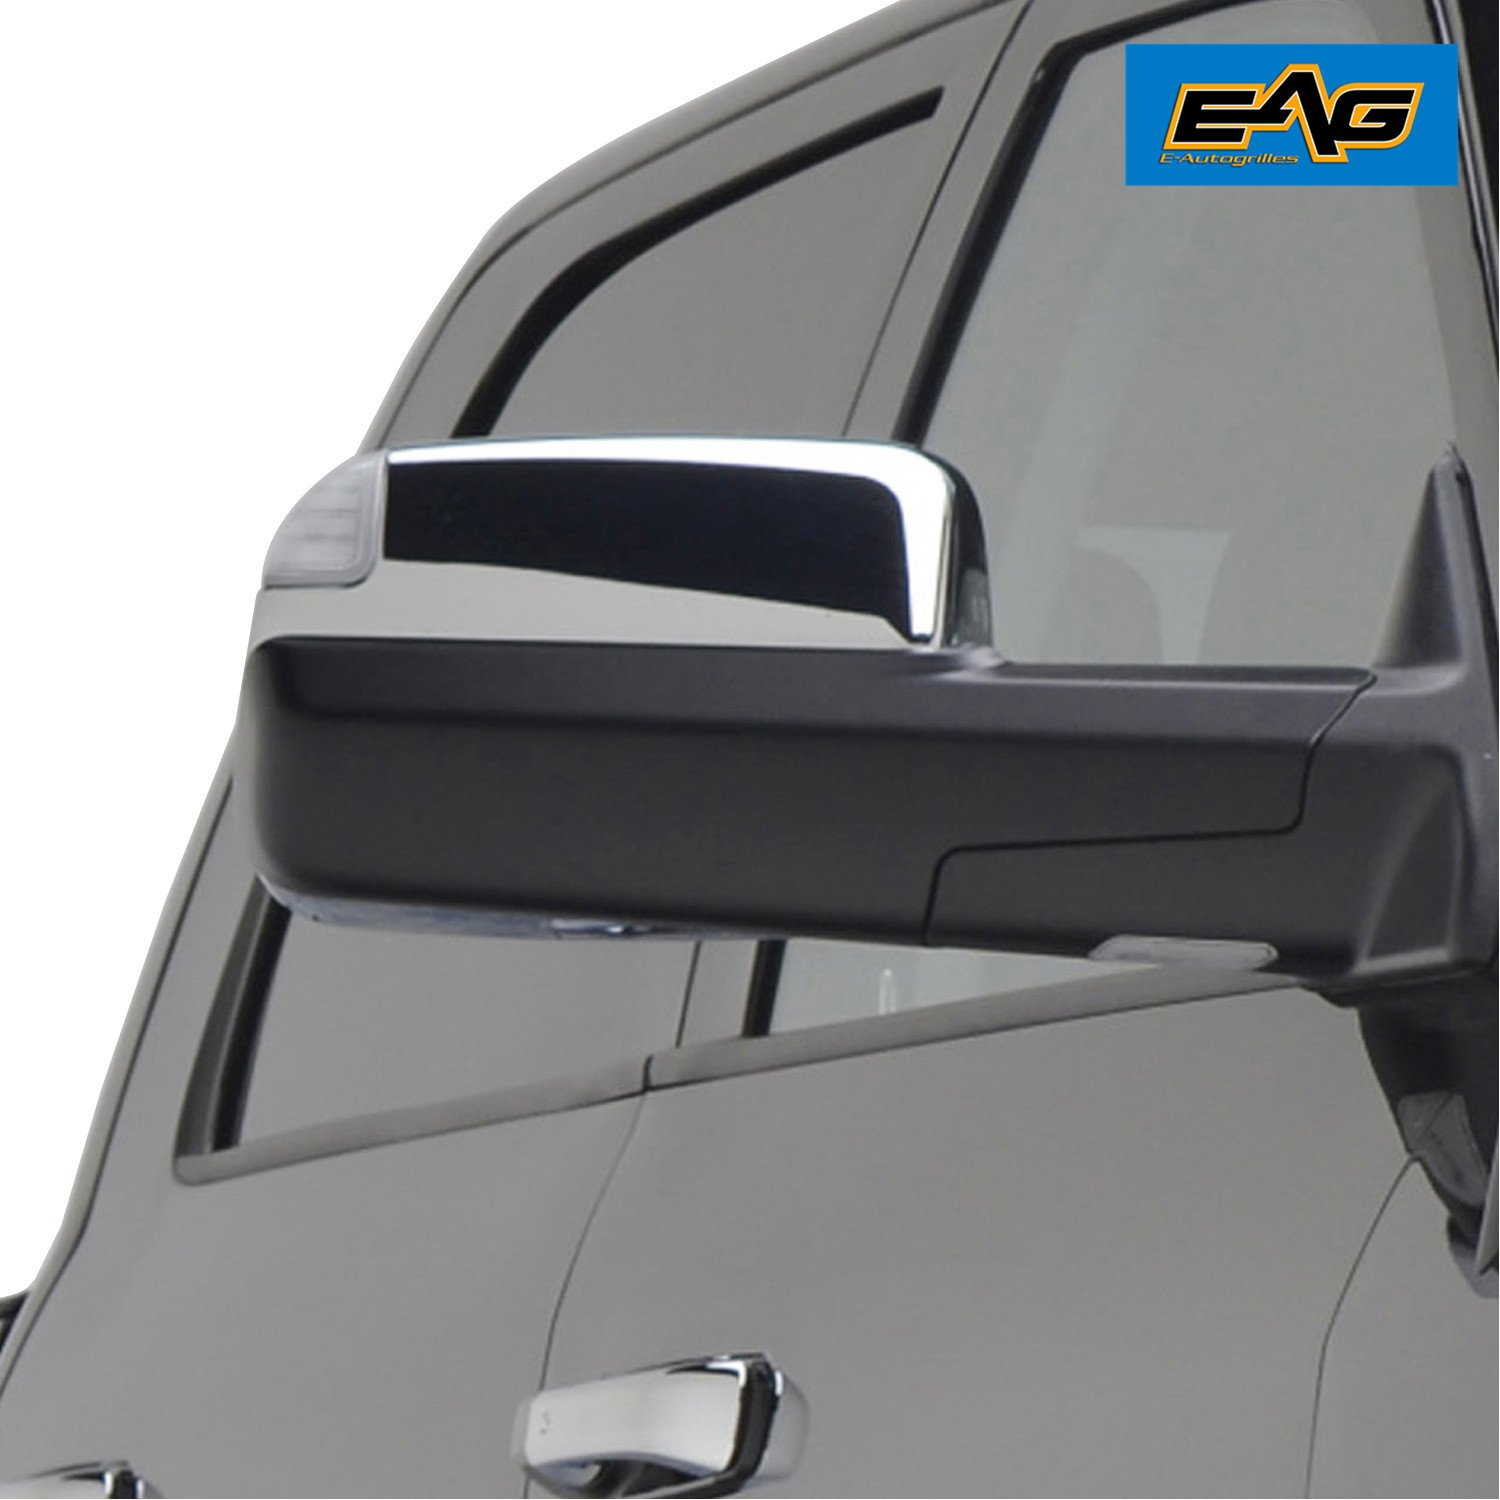 EAG 09-16 Dodge Ram 1500 10-16 Dodge Ram 2500//3500 Towing Mirror Cover Triple Chrome Plated ABS Upper Half